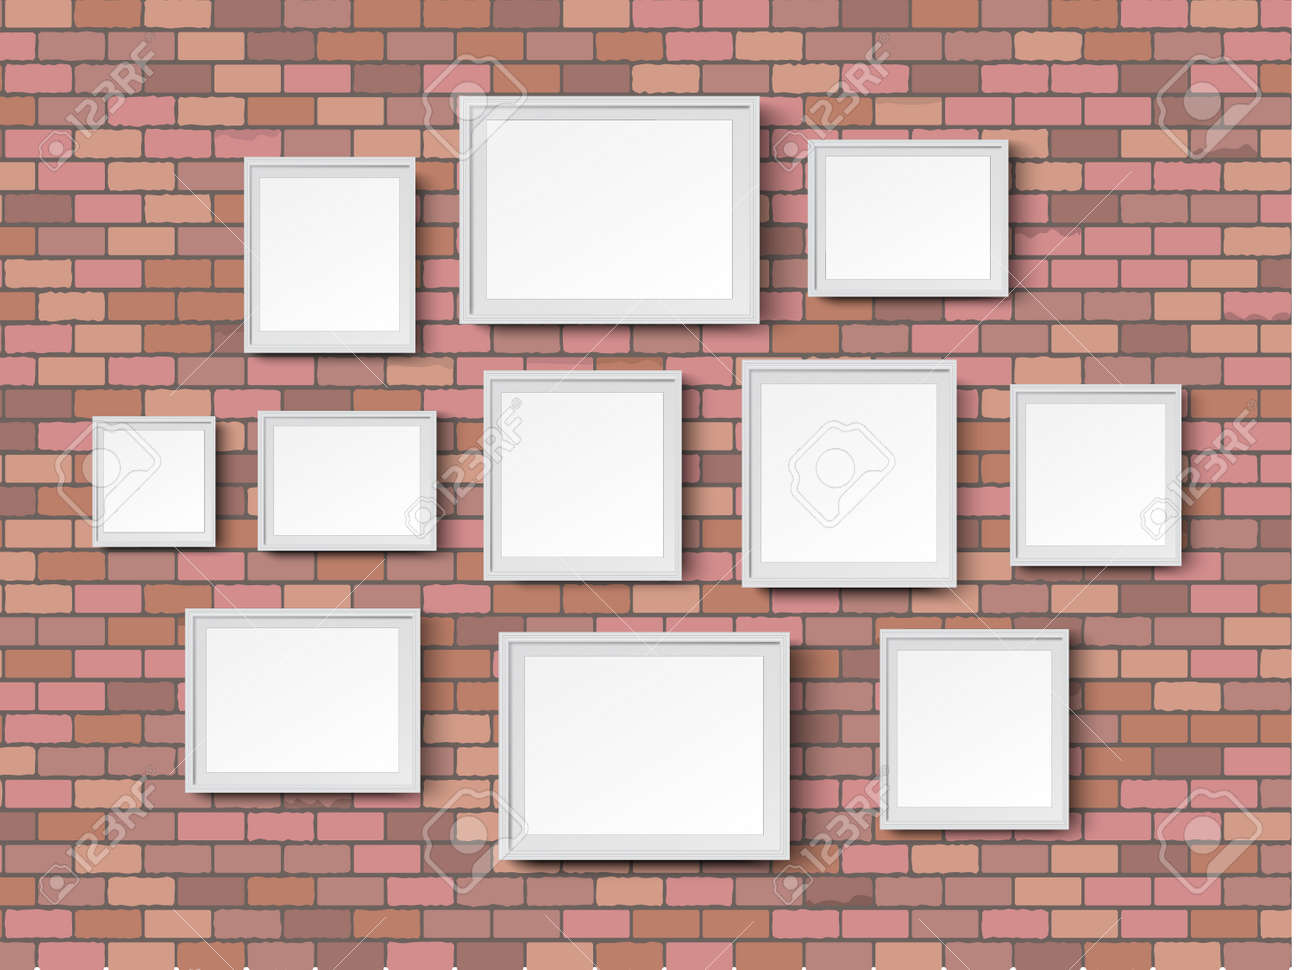 Various sizes picture photo frames on red bricks wall background various sizes picture photo frames on red bricks wall background illustration stock illustration 48468921 jeuxipadfo Gallery